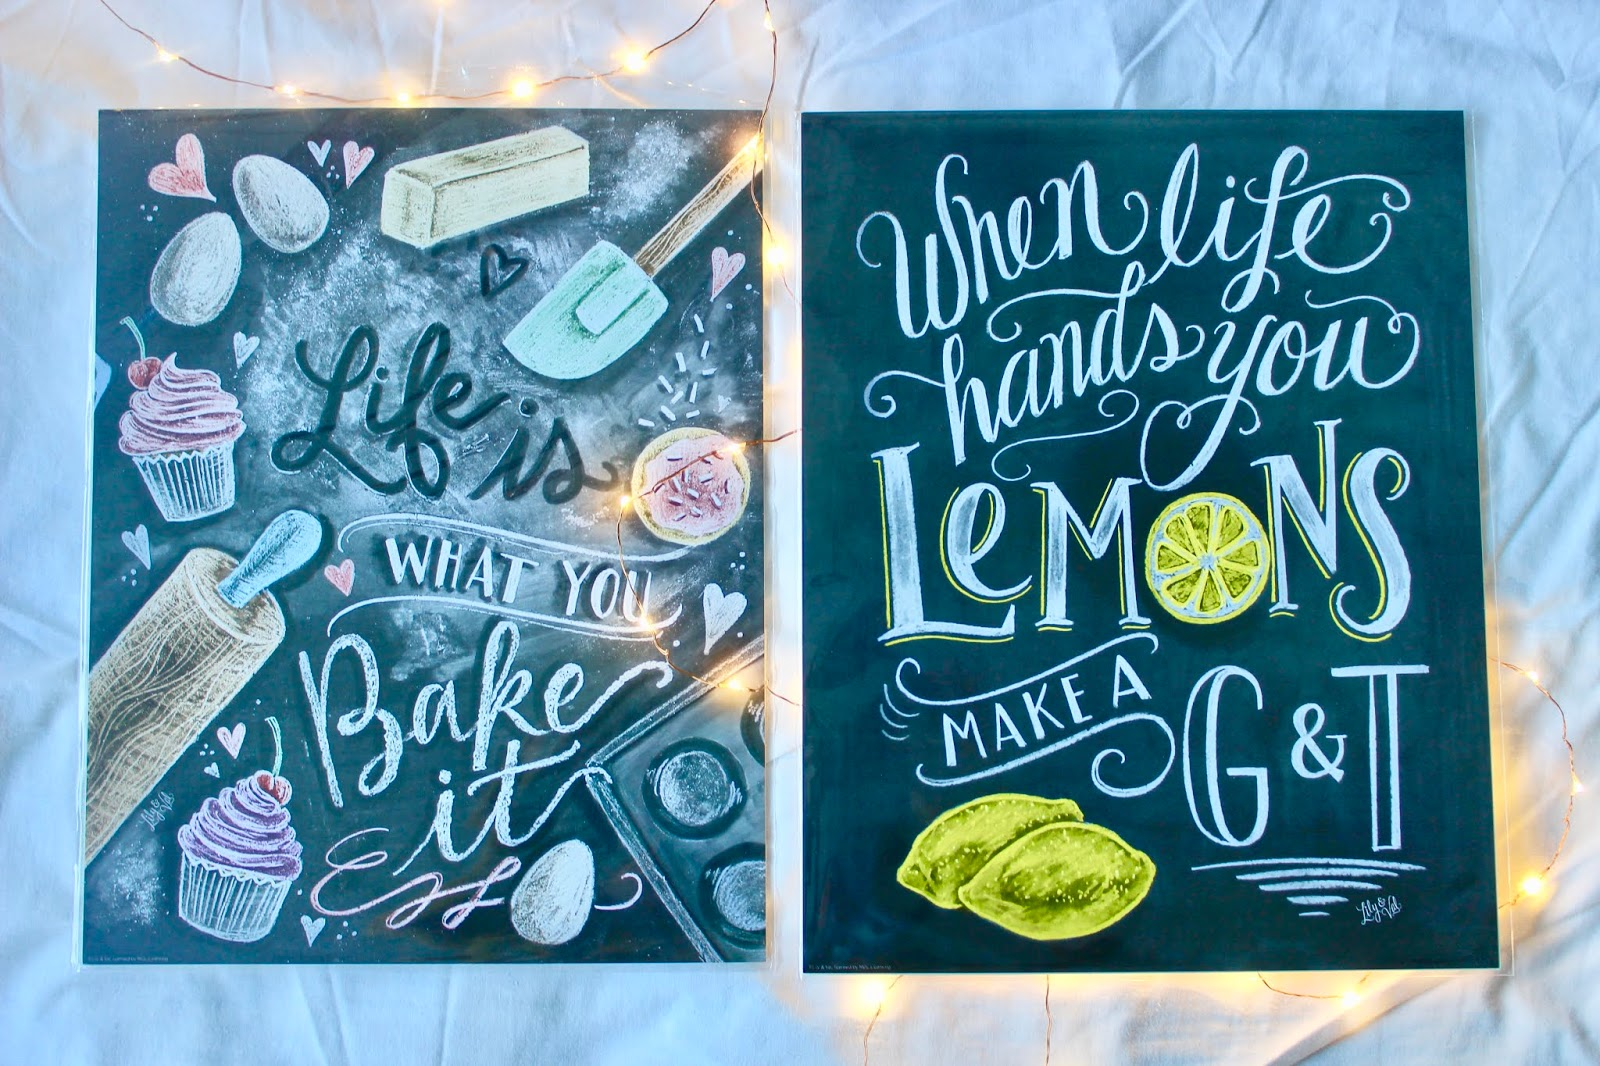 'Life is what you bake it' and 'When life gives you lemons' prints